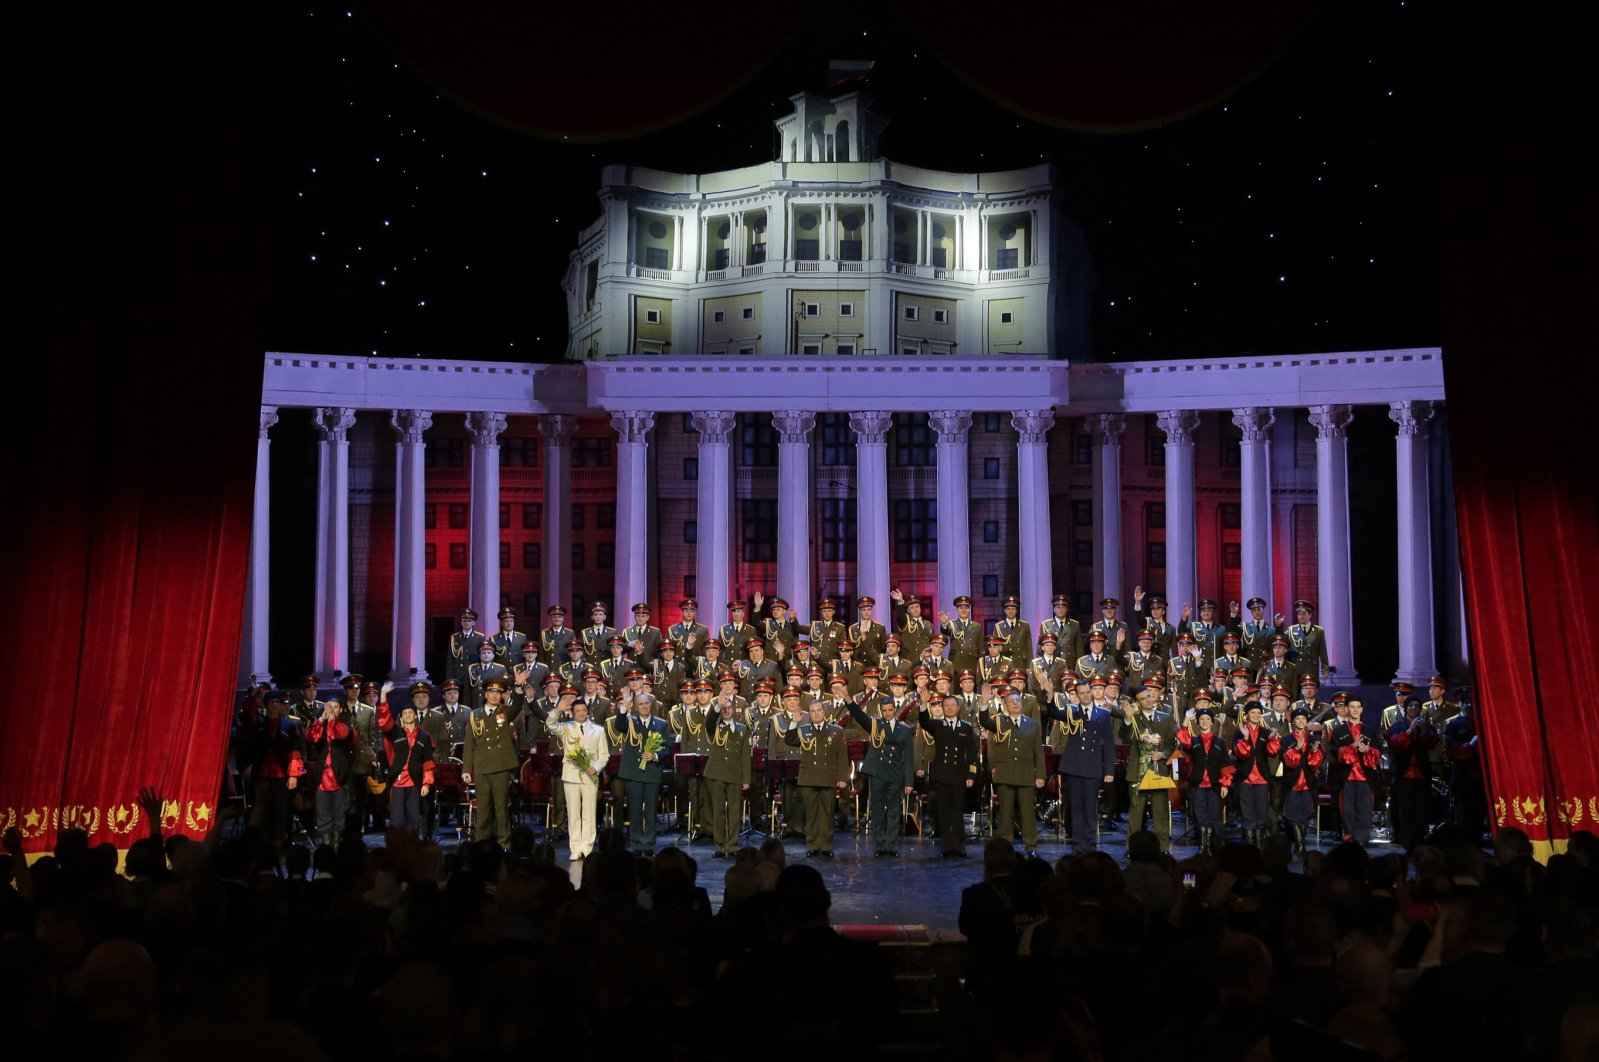 Members of the Alexandrov Ensemble take a bow during the curtain call after their performance in Moscow, Russia, Thursday, Feb. 16, 2017. (AP Photo)